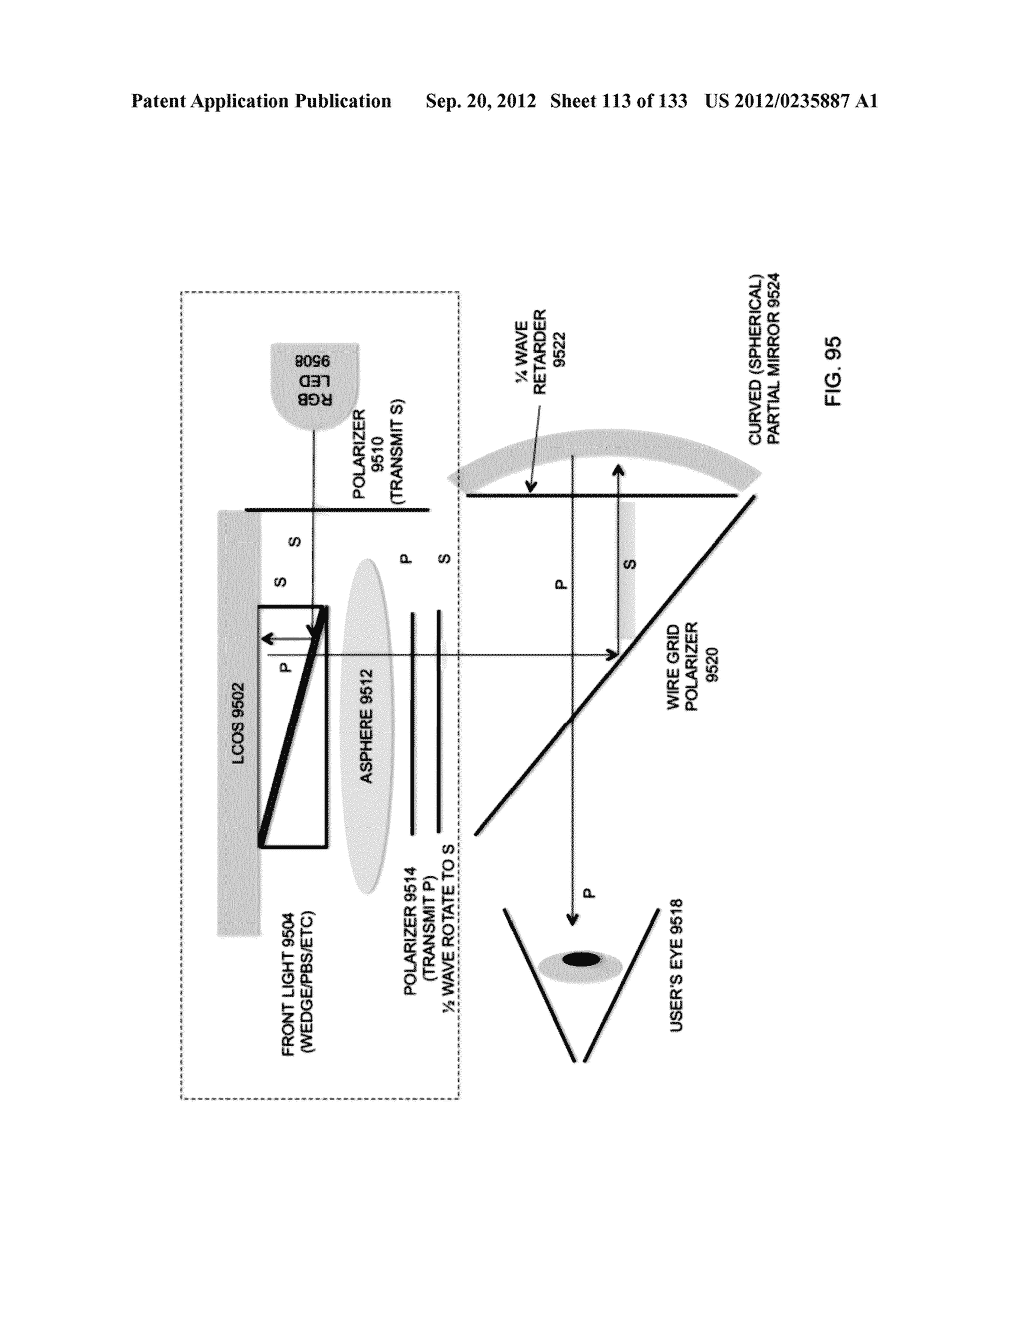 SEE-THROUGH NEAR-EYE DISPLAY GLASSES INCLUDING A PARTIALLY REFLECTIVE,     PARTIALLY TRANSMITTING OPTICAL ELEMENT AND AN OPTICALLY FLAT FILM - diagram, schematic, and image 114